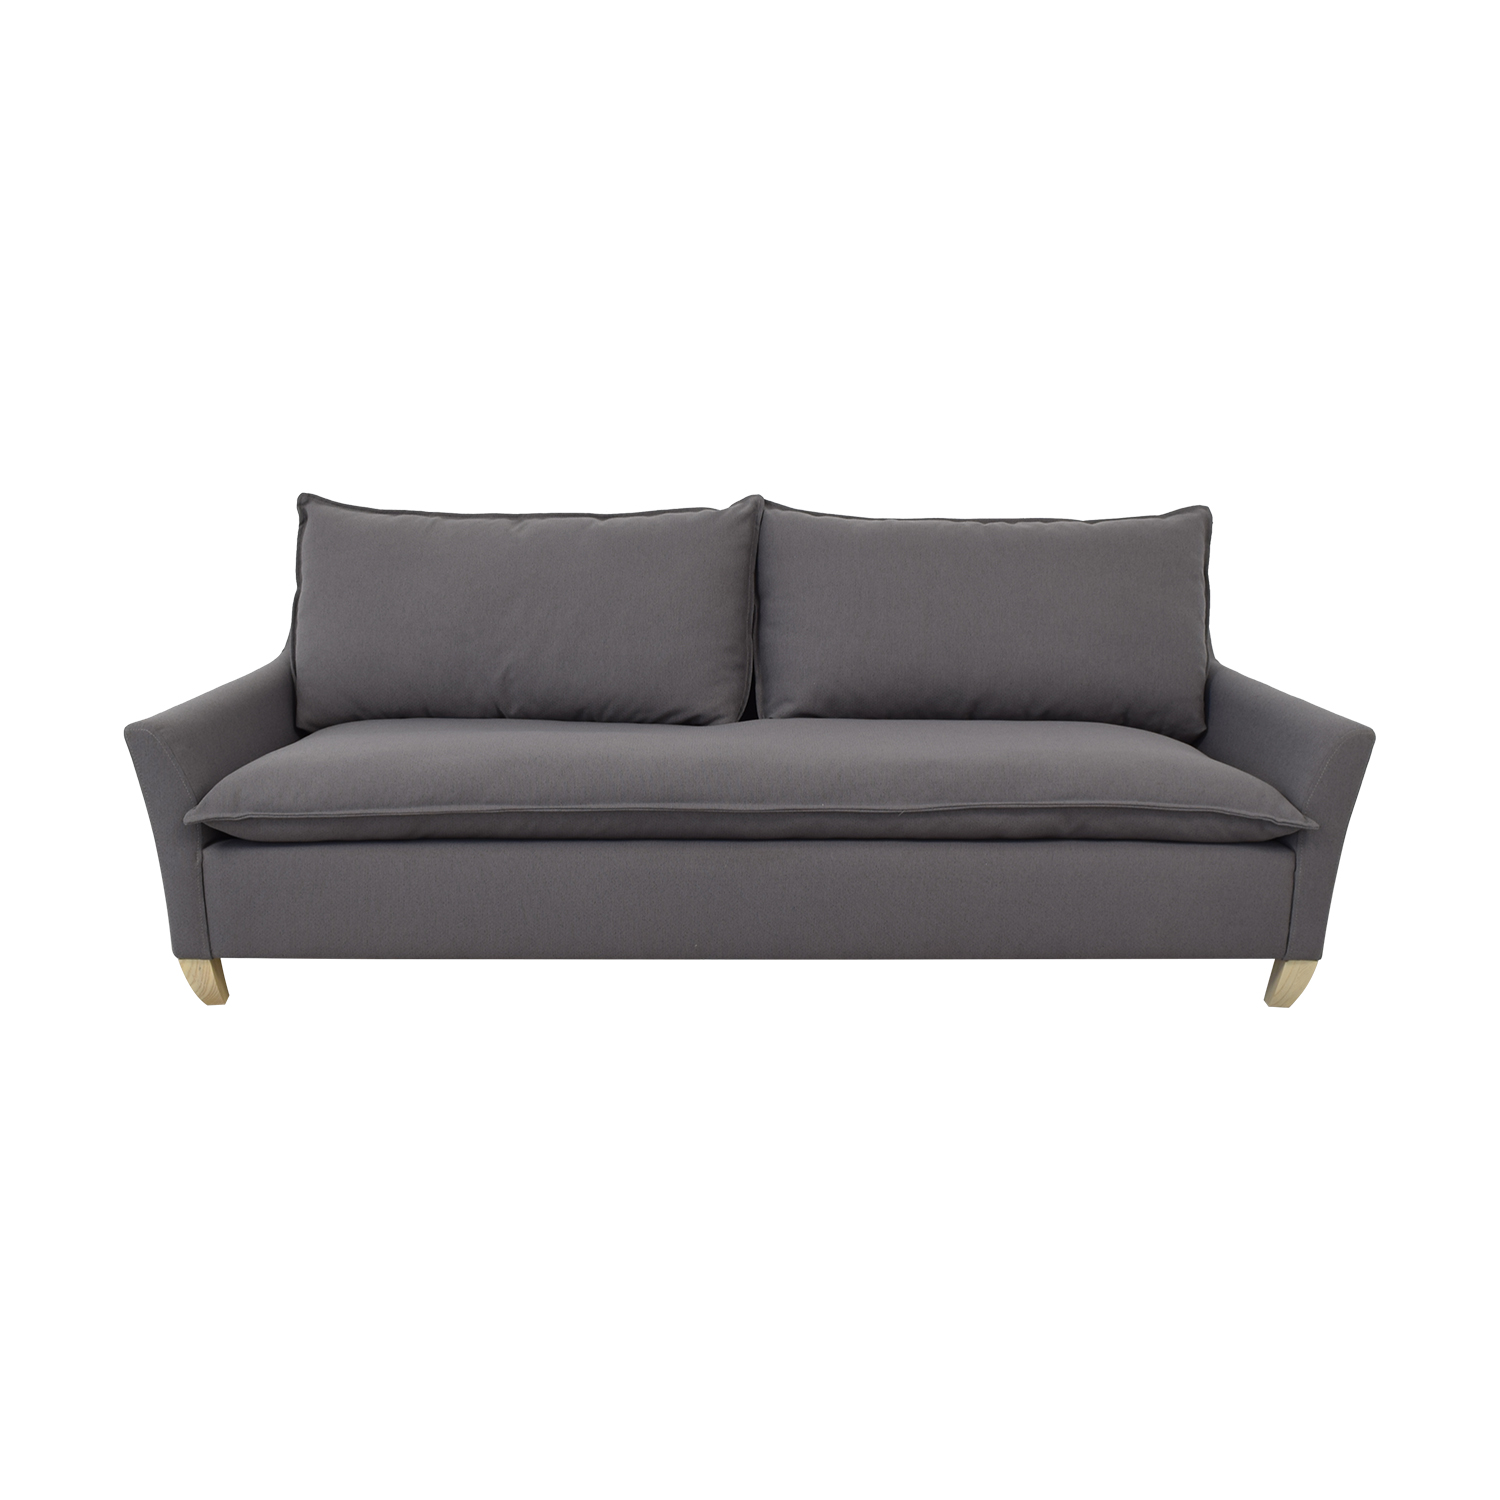 buy West Elm Bliss Sleeper Sofa West Elm Sofa Beds